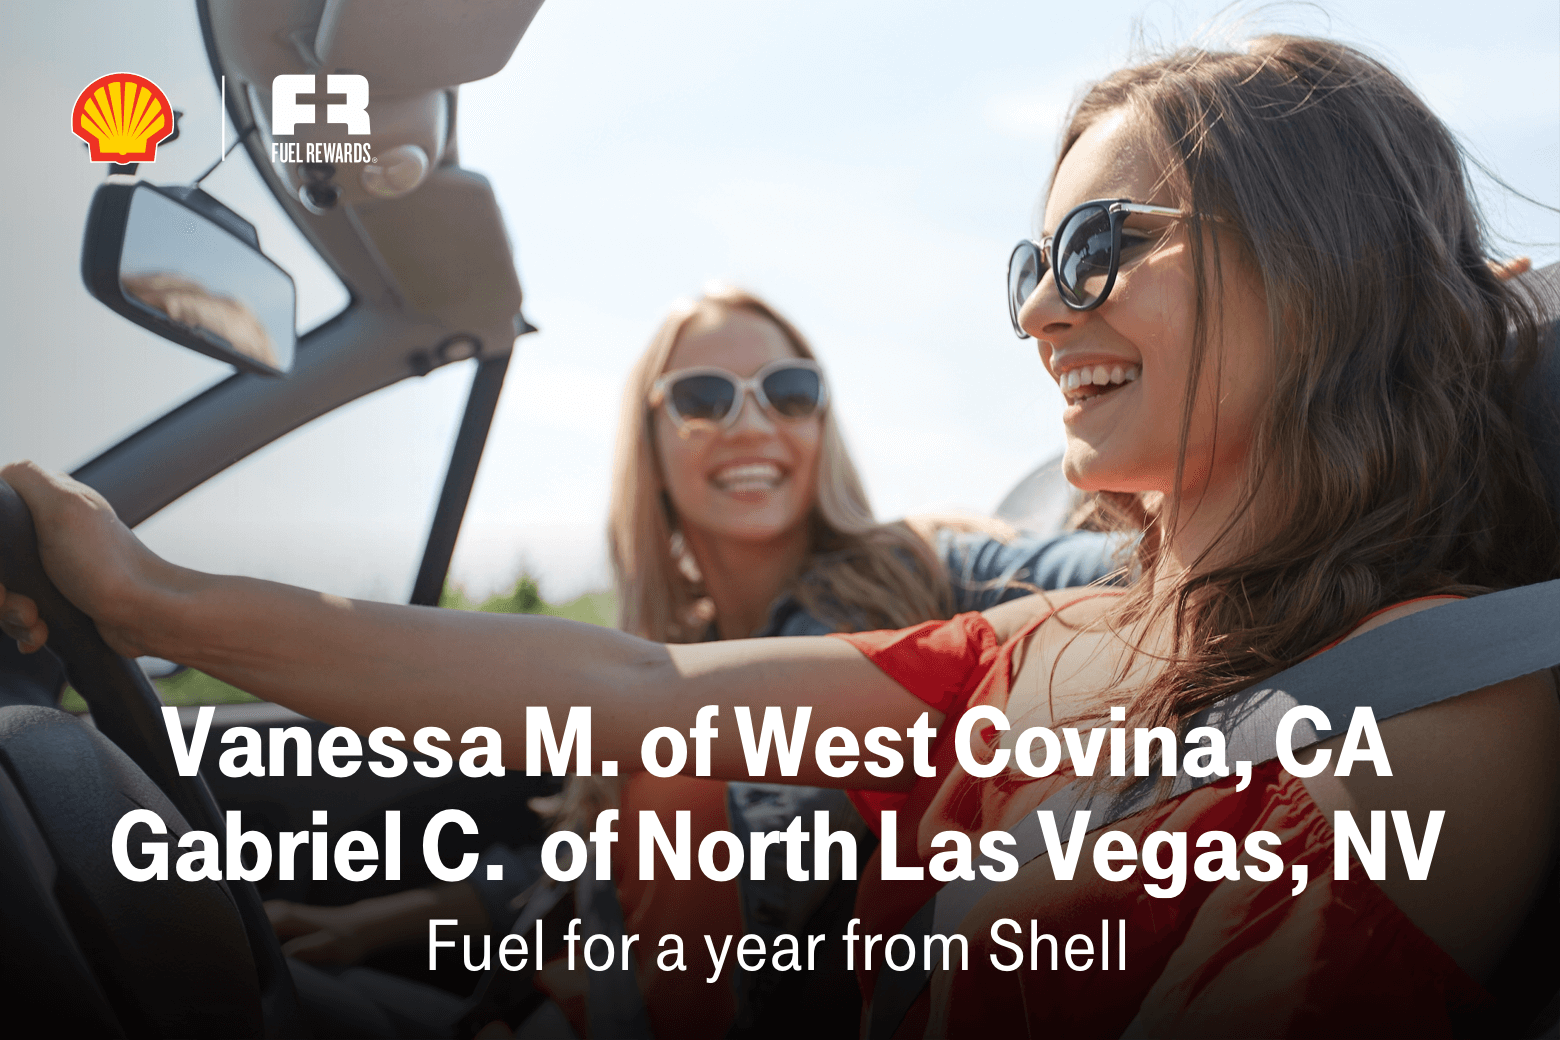 Shell. Fuel Rewards. Vanessa M. of West Covina, CA. Gabriel C. of North Las Vegas, NY. Fuel for a year from Shell.